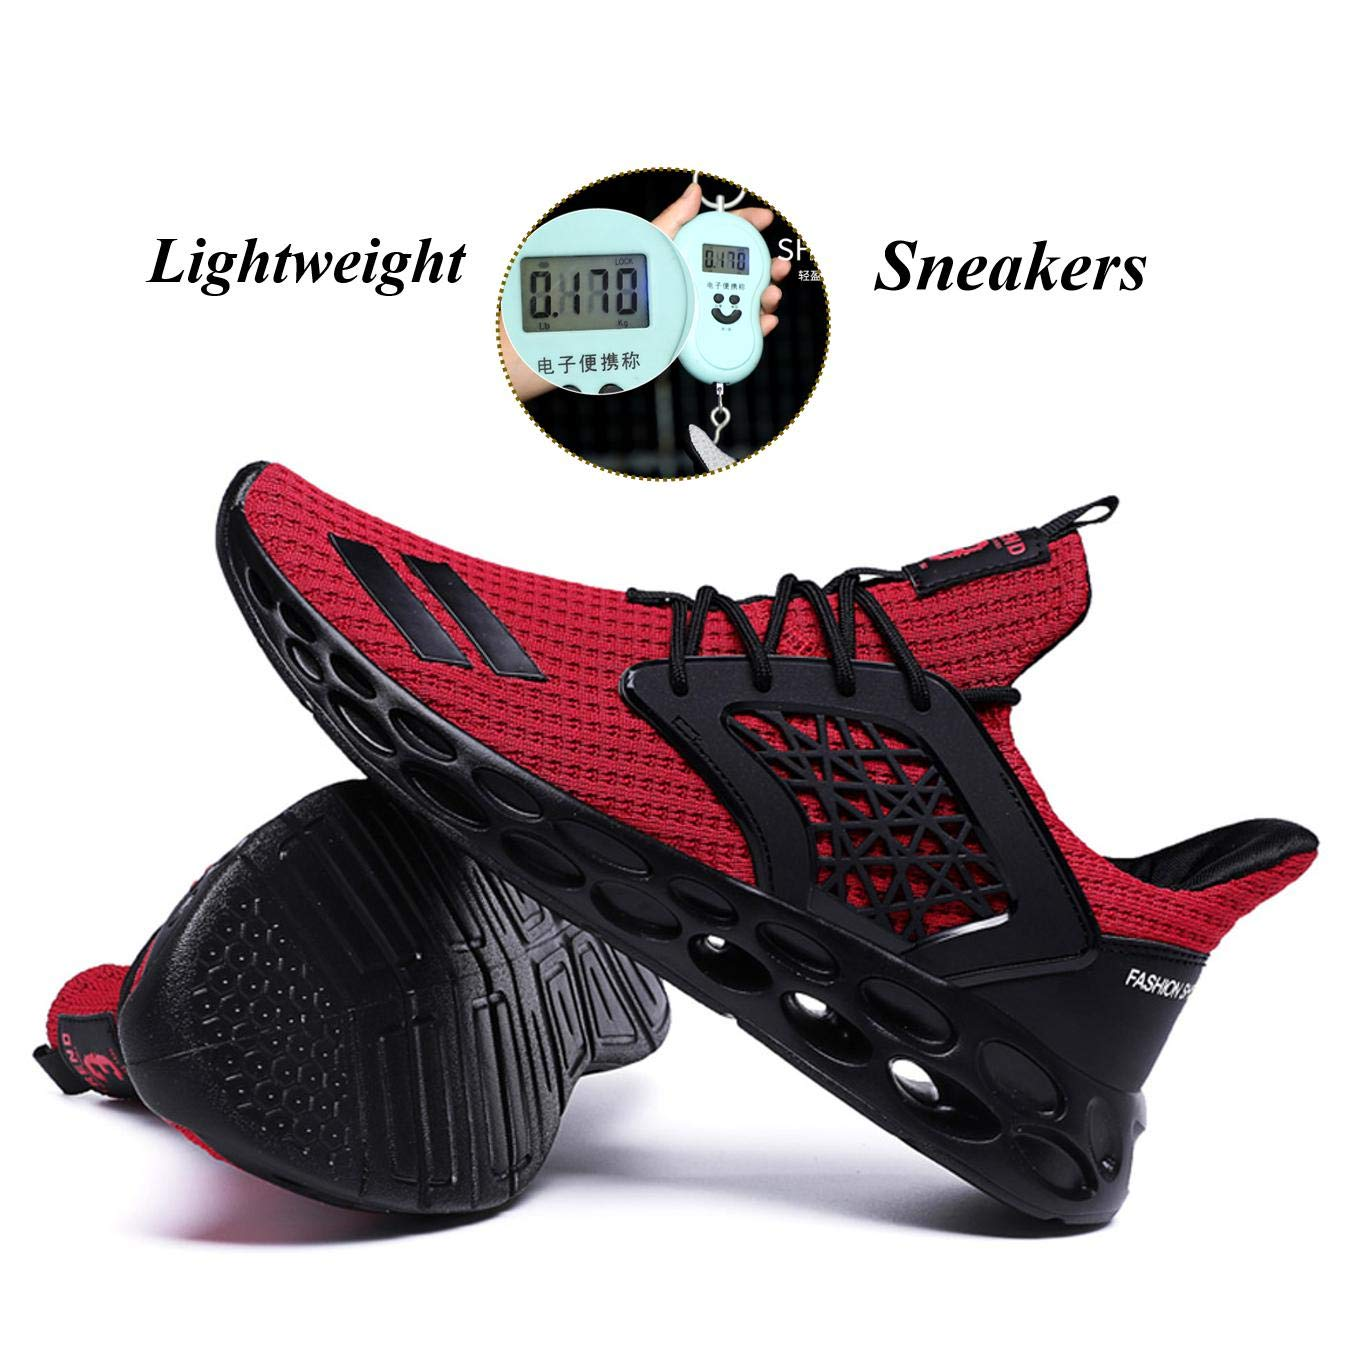 Qiucdzi Men s Casual Walking Shoes Air Cushion Sneakers Breathable Lightweight Outdoor Athletic Gym Running Shoes